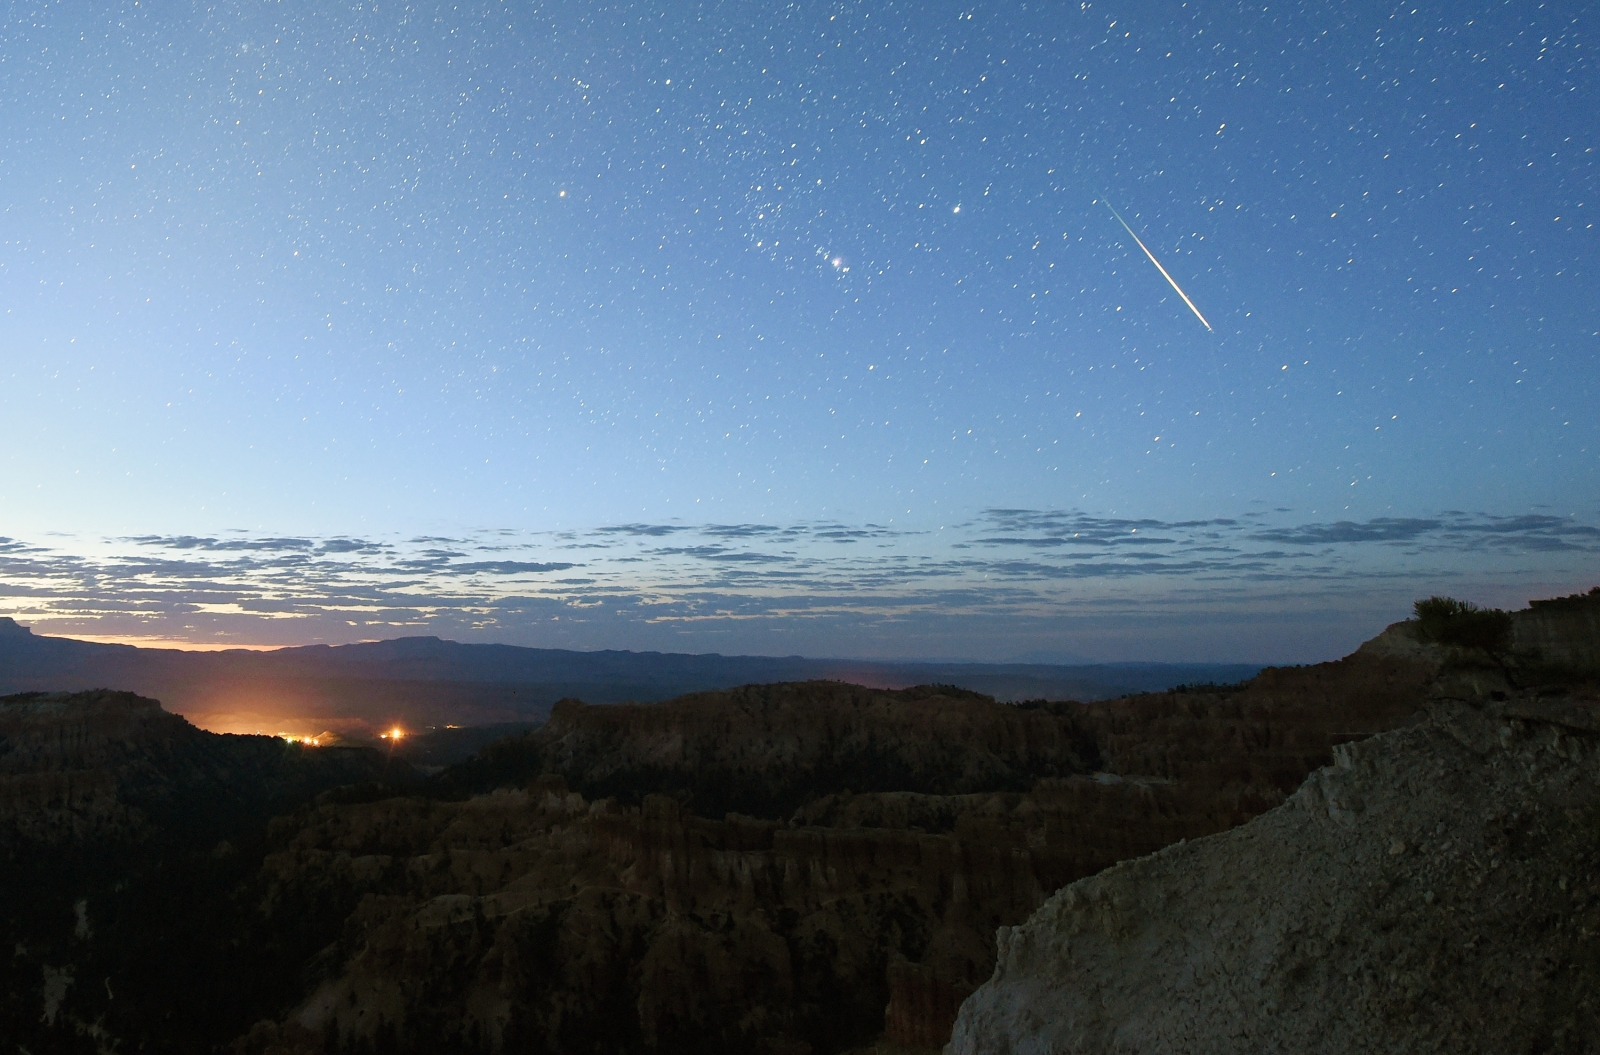 cctv-footage-captures-meteor-flying-over-canada